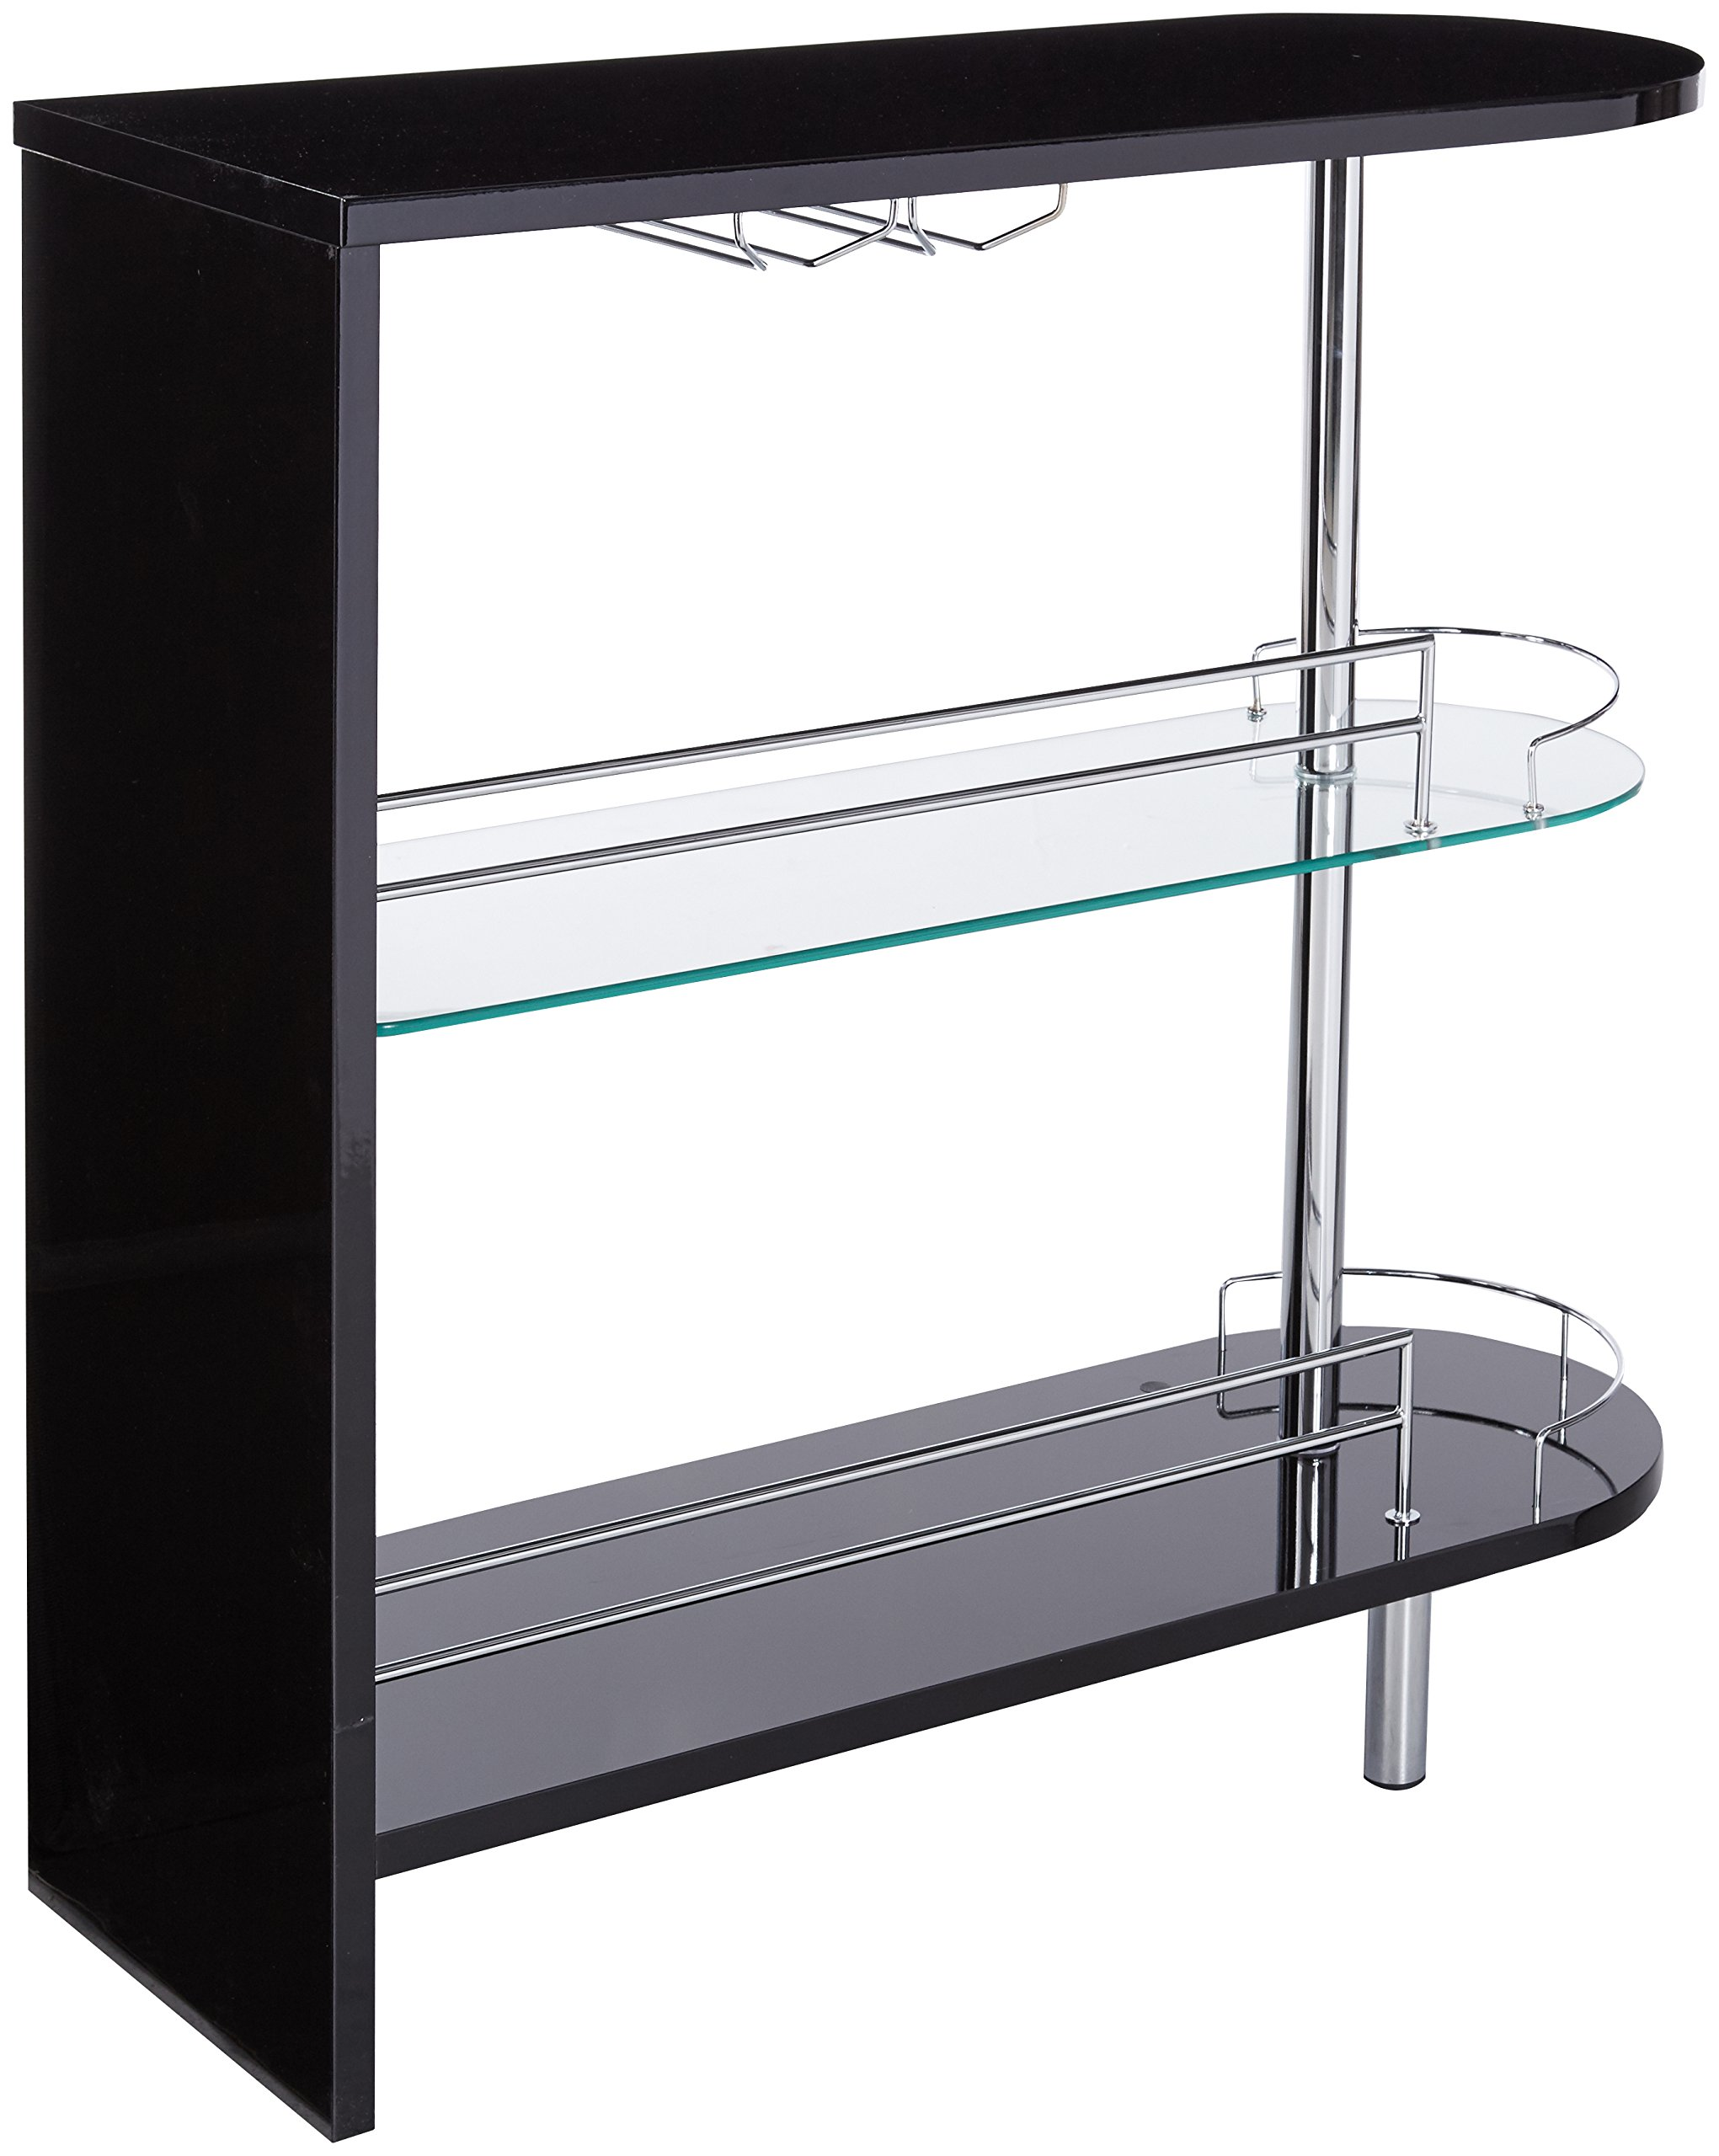 2-holder Bar Table Glossy Black and Clear by Coaster Home Furnishings